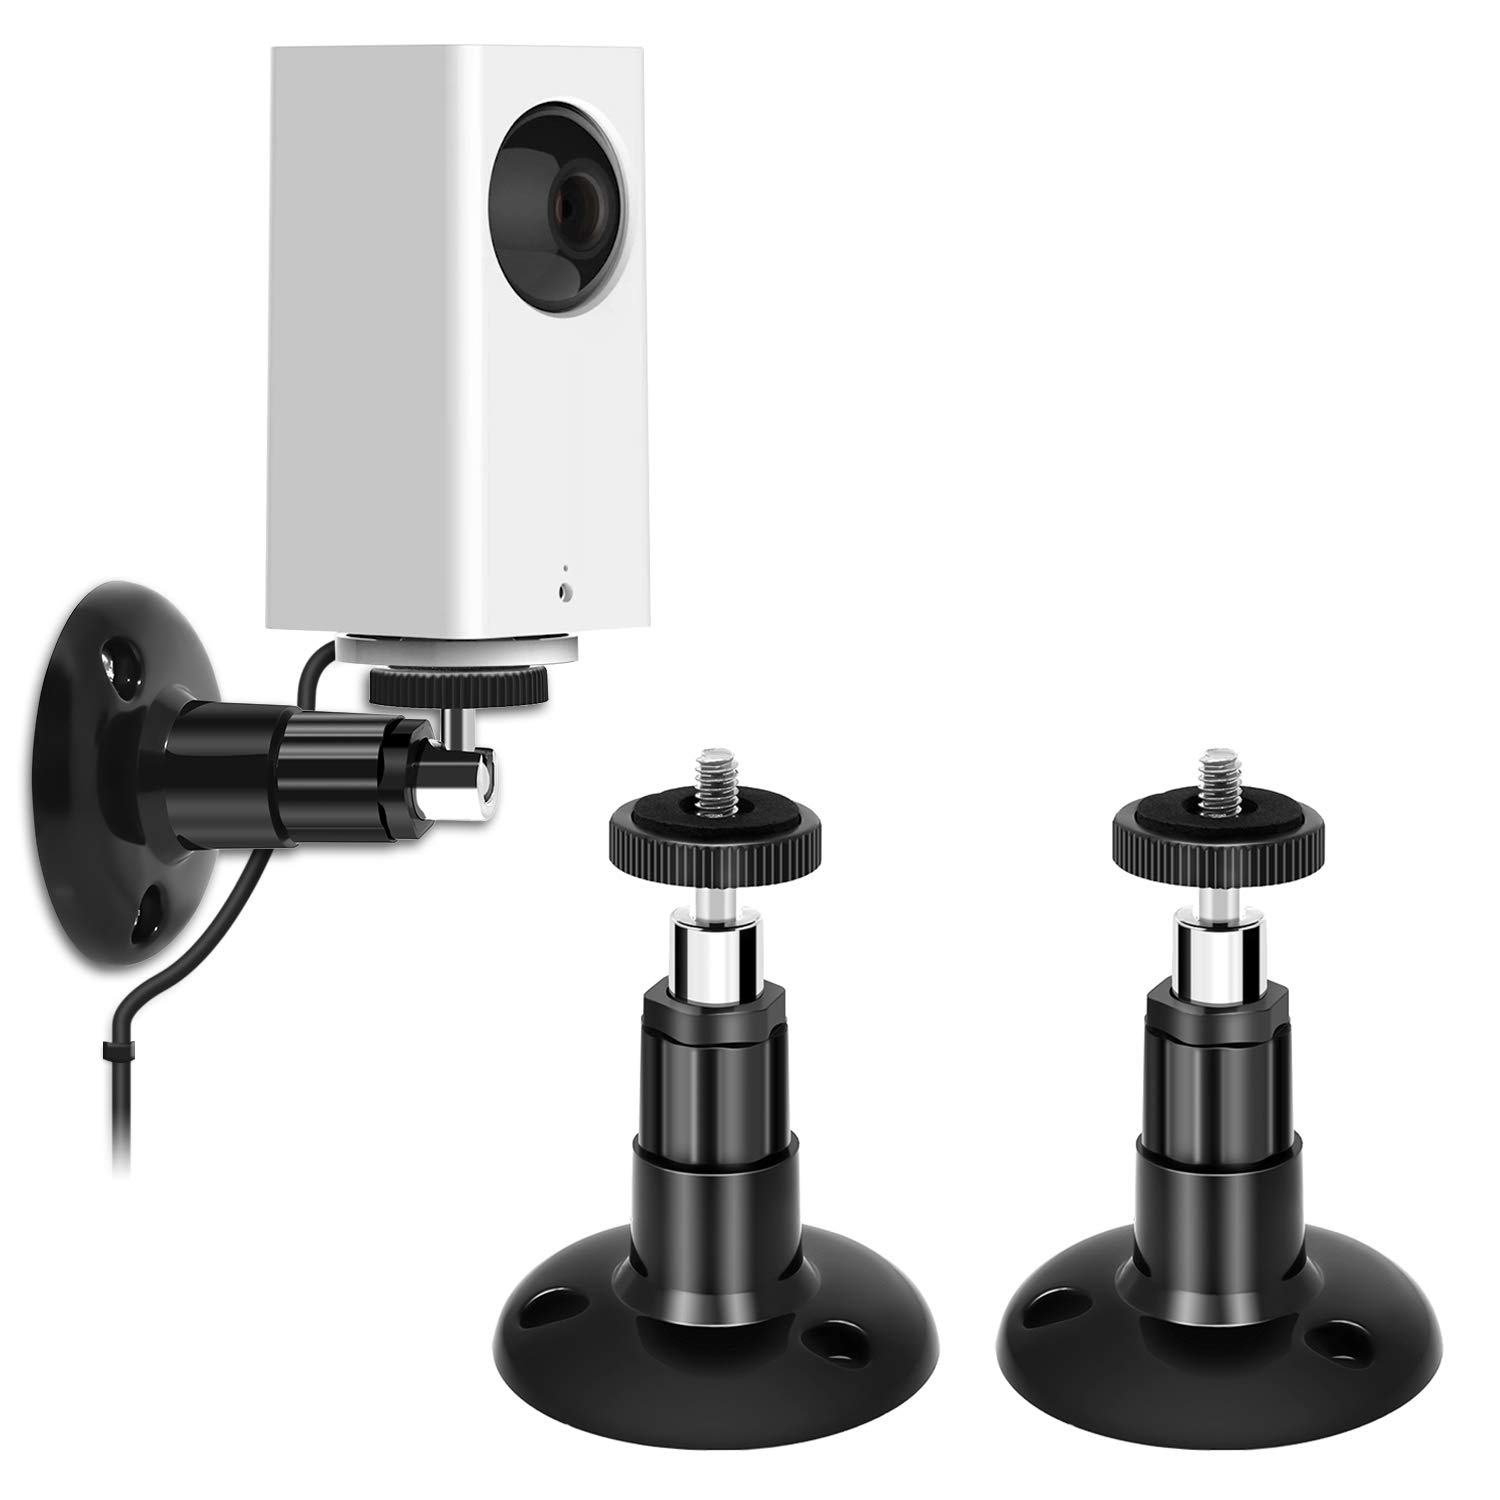 Wyze Cam Pan Wall Mount, Adjustable Indoor and Outdoor 360 Degree Swivel Ceiling Mount Bracket for Wyze Cam Pan 1080p Pan, Arlo Pro, Arlo and Other Compatible Smart Home Security Camera (2 Pack). MENEEA PJ1WN-US-ZLX-1-1